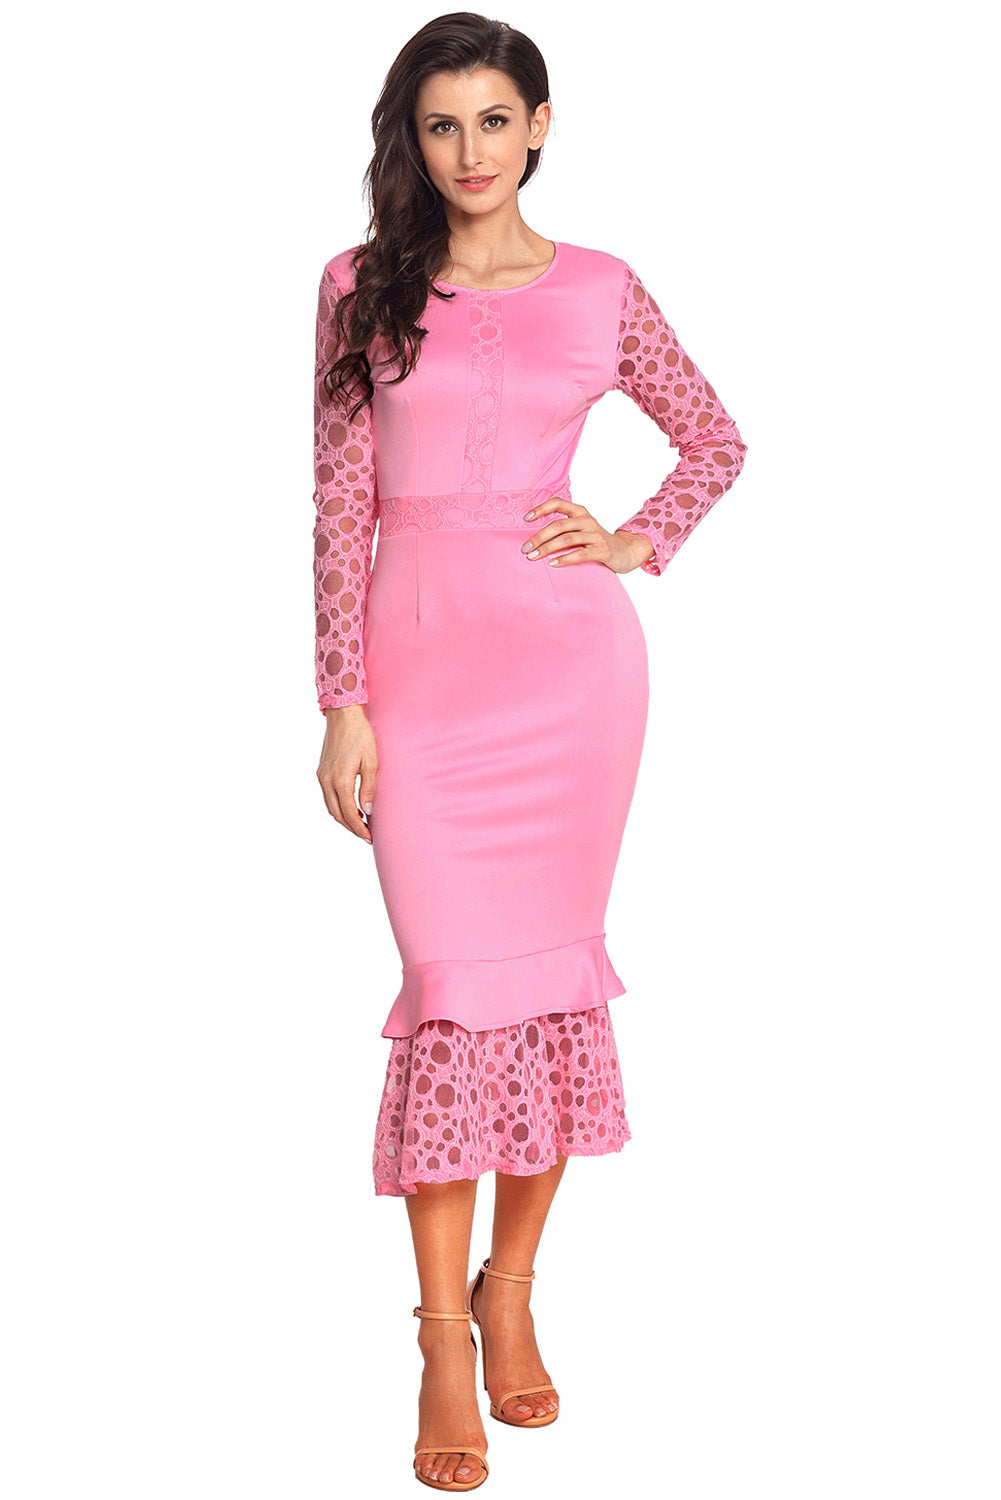 Sexy Pink Hollow-out Long Sleeve Lace Ruffle Bodycon Midi Dress – SEXY  AFFORDABLE CLOTHING 6901fc3b1